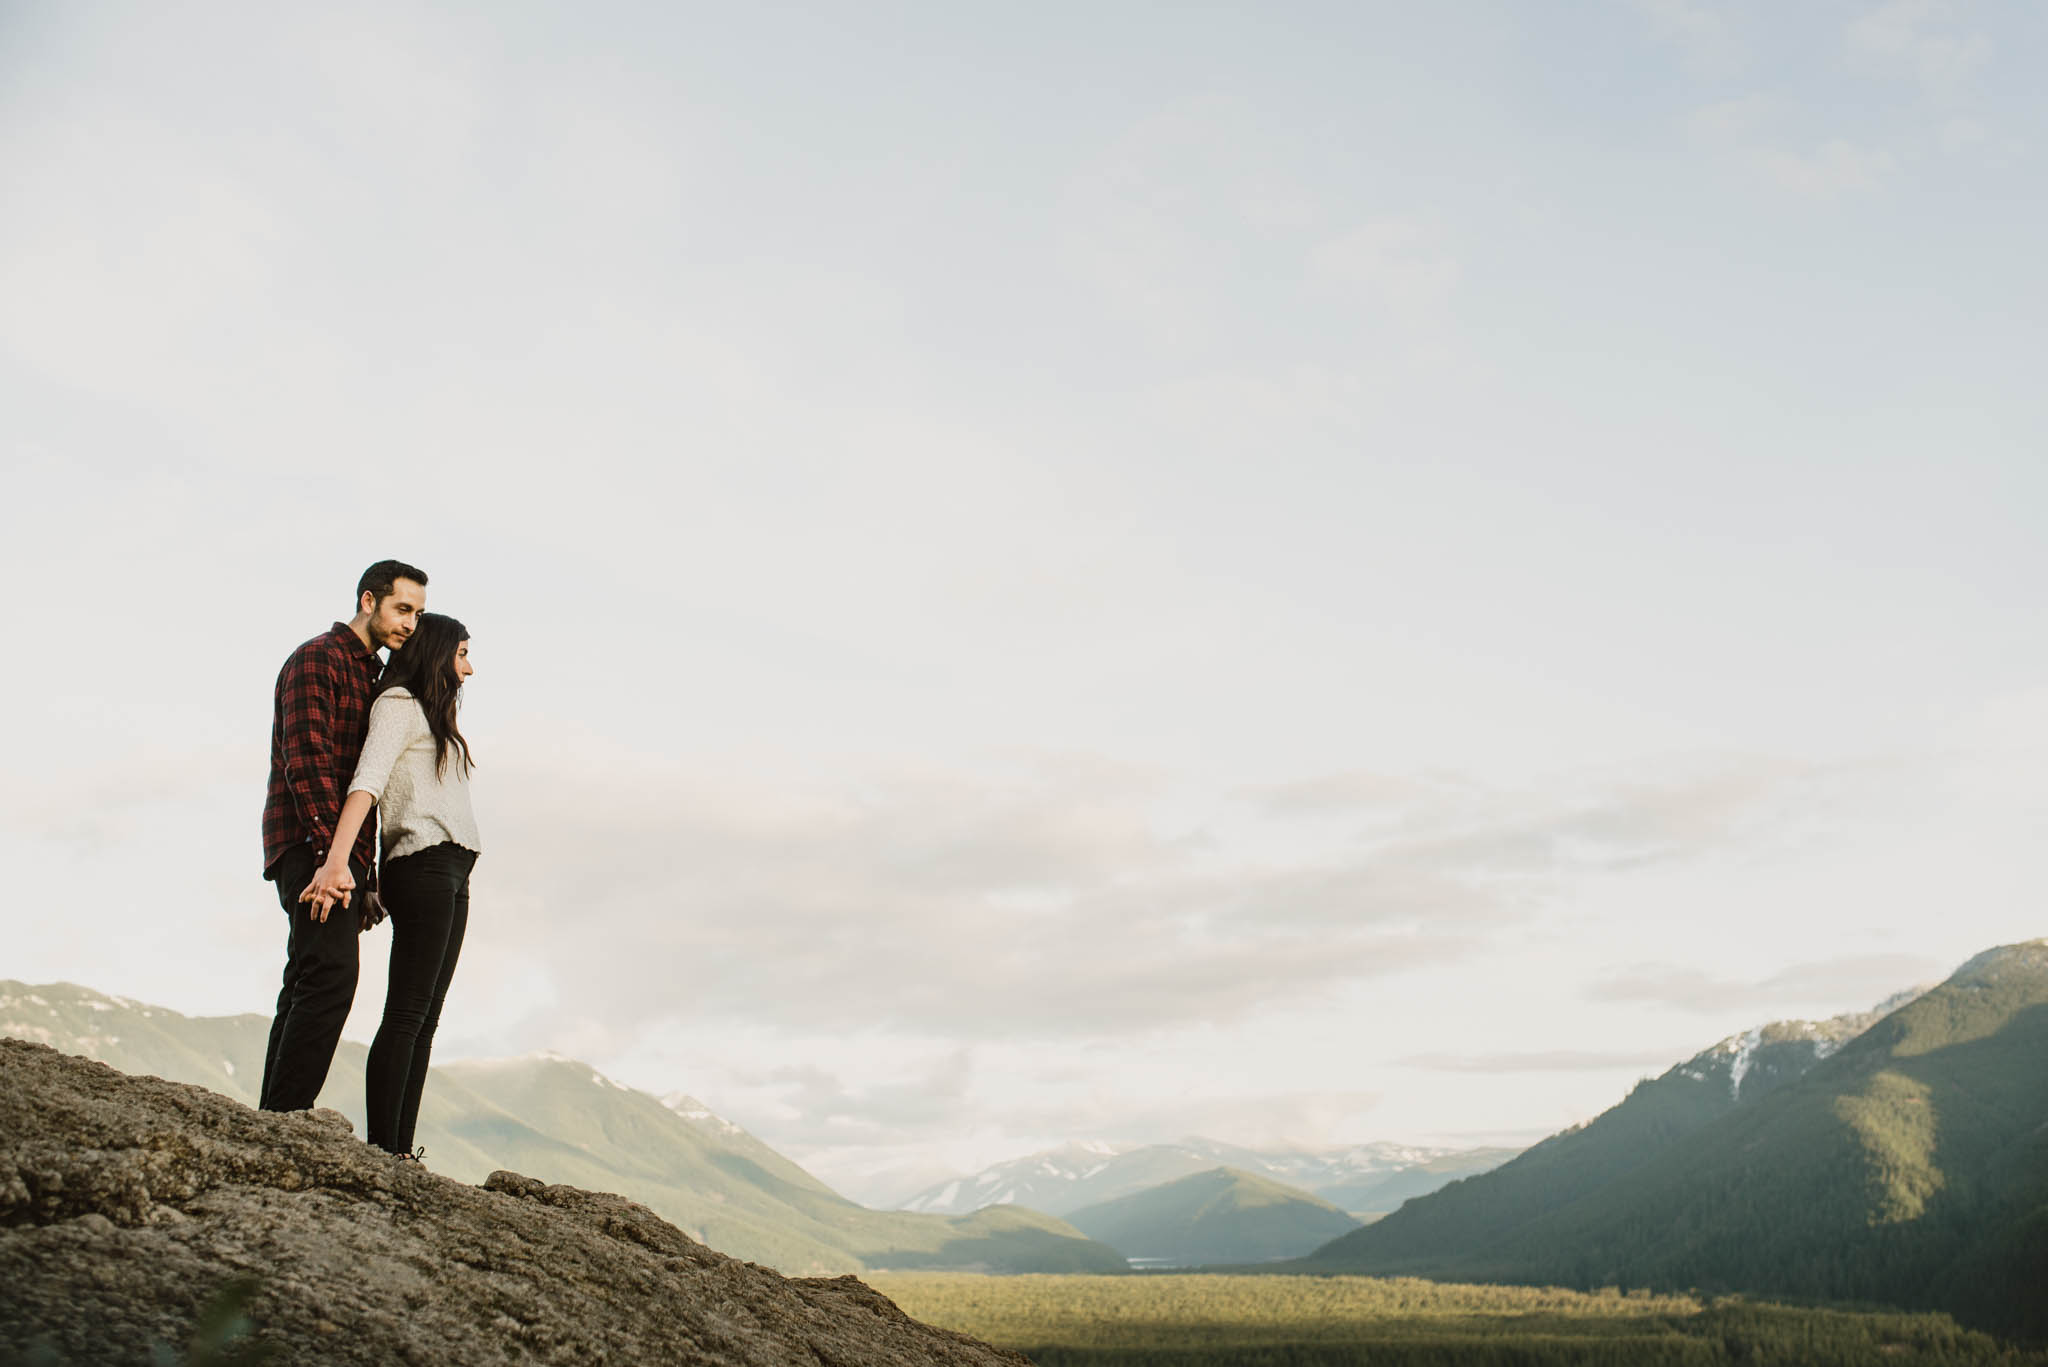 ©Isaiah-&-Taylor-Photography---Rattlesnake-Ledge-Trail-Engagement,-Seattle-Washington-027.jpg